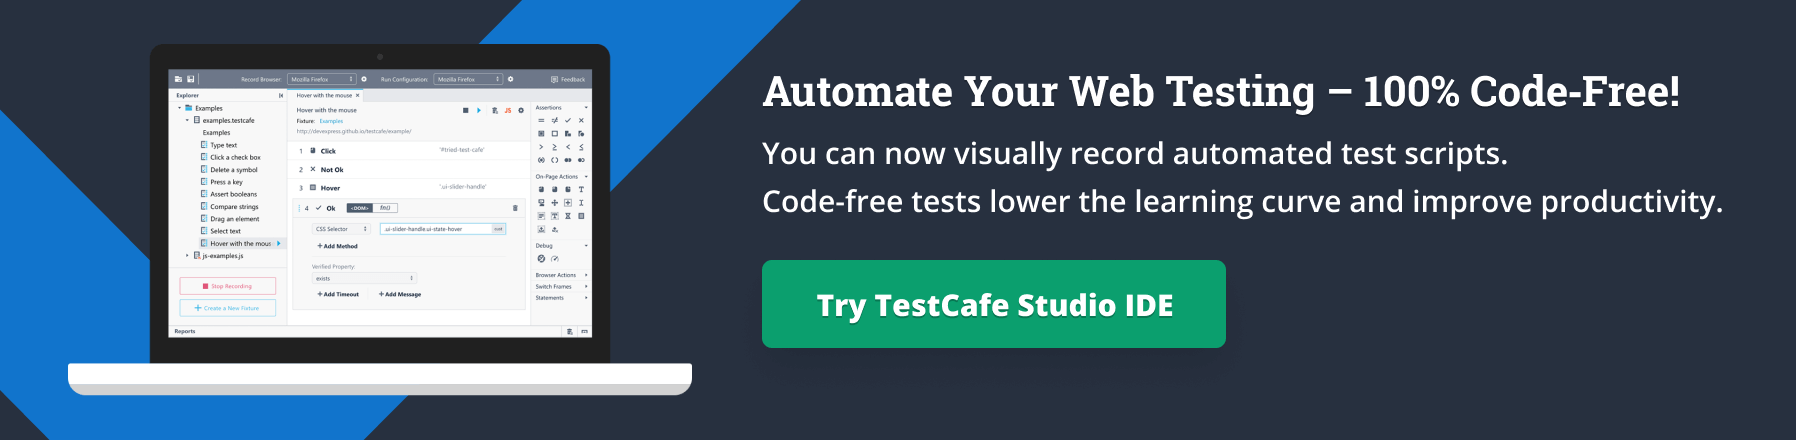 Try TestCafe Studio IDE